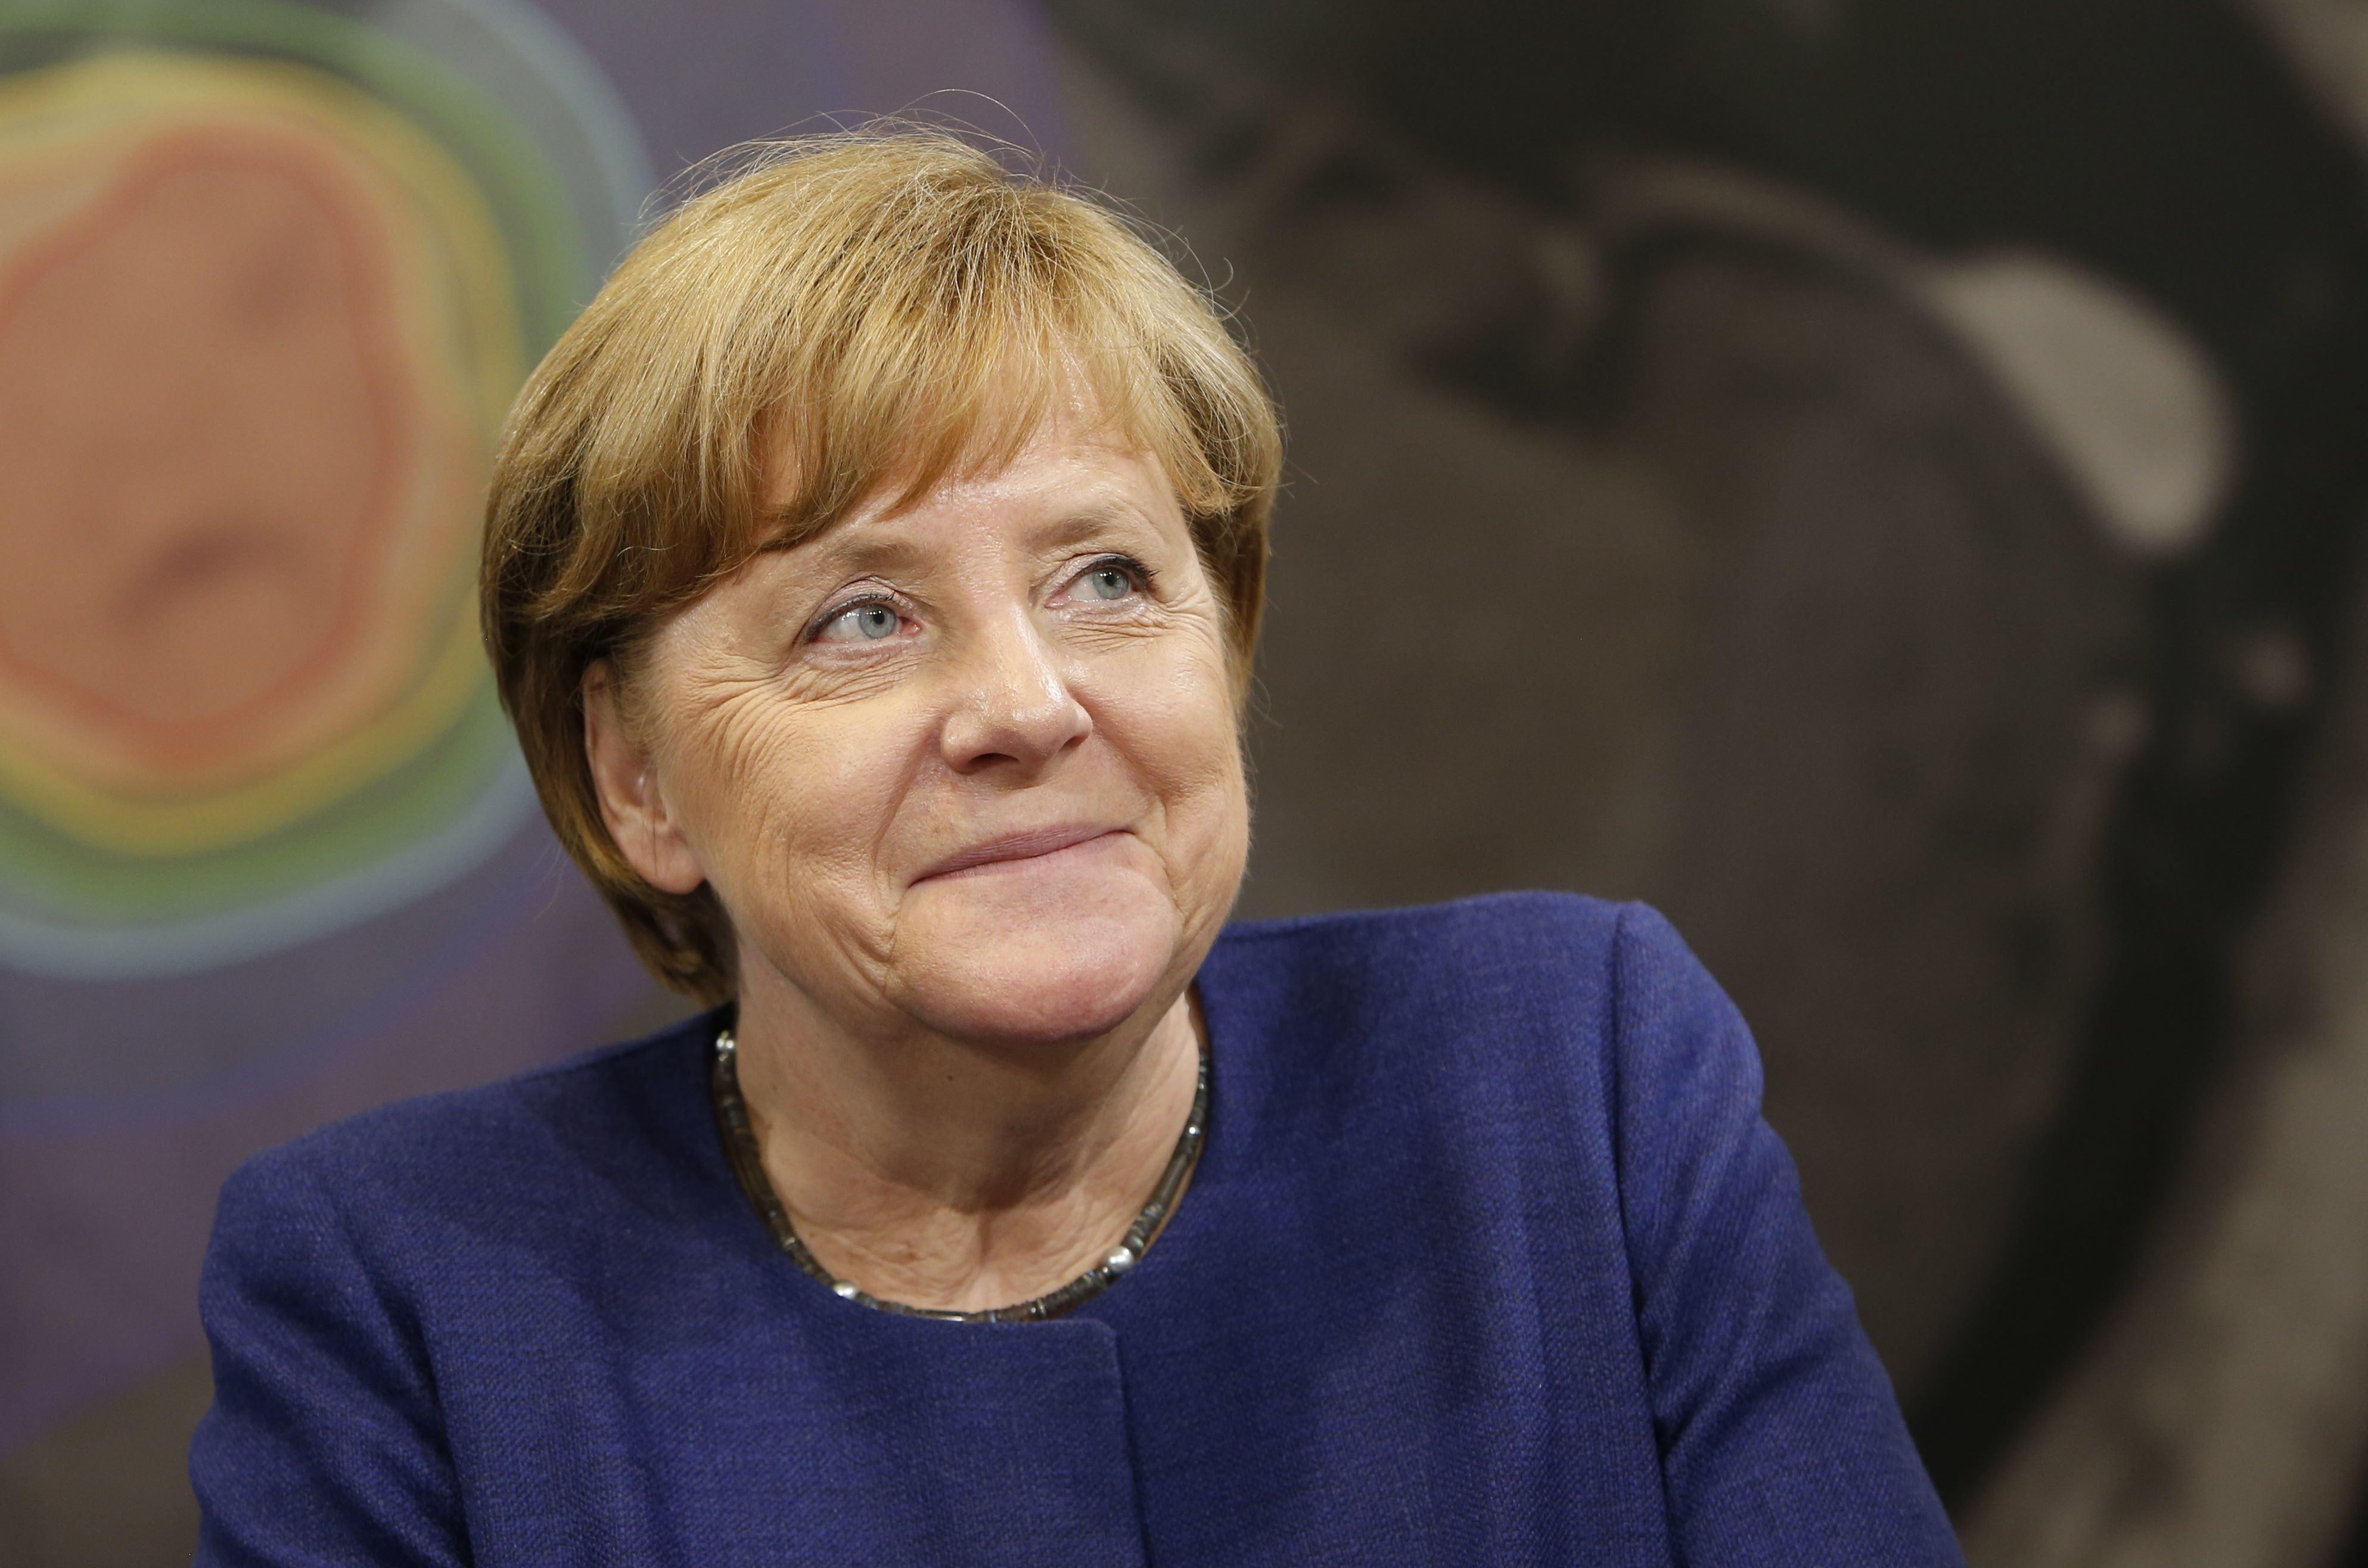 German Chancellor Angela Merkel, attends the official opening of Brainlab headquarters in Munich, Germany Tuesday, July 11, 2017.   (Michaela Rehle/Pool Photo via AP)